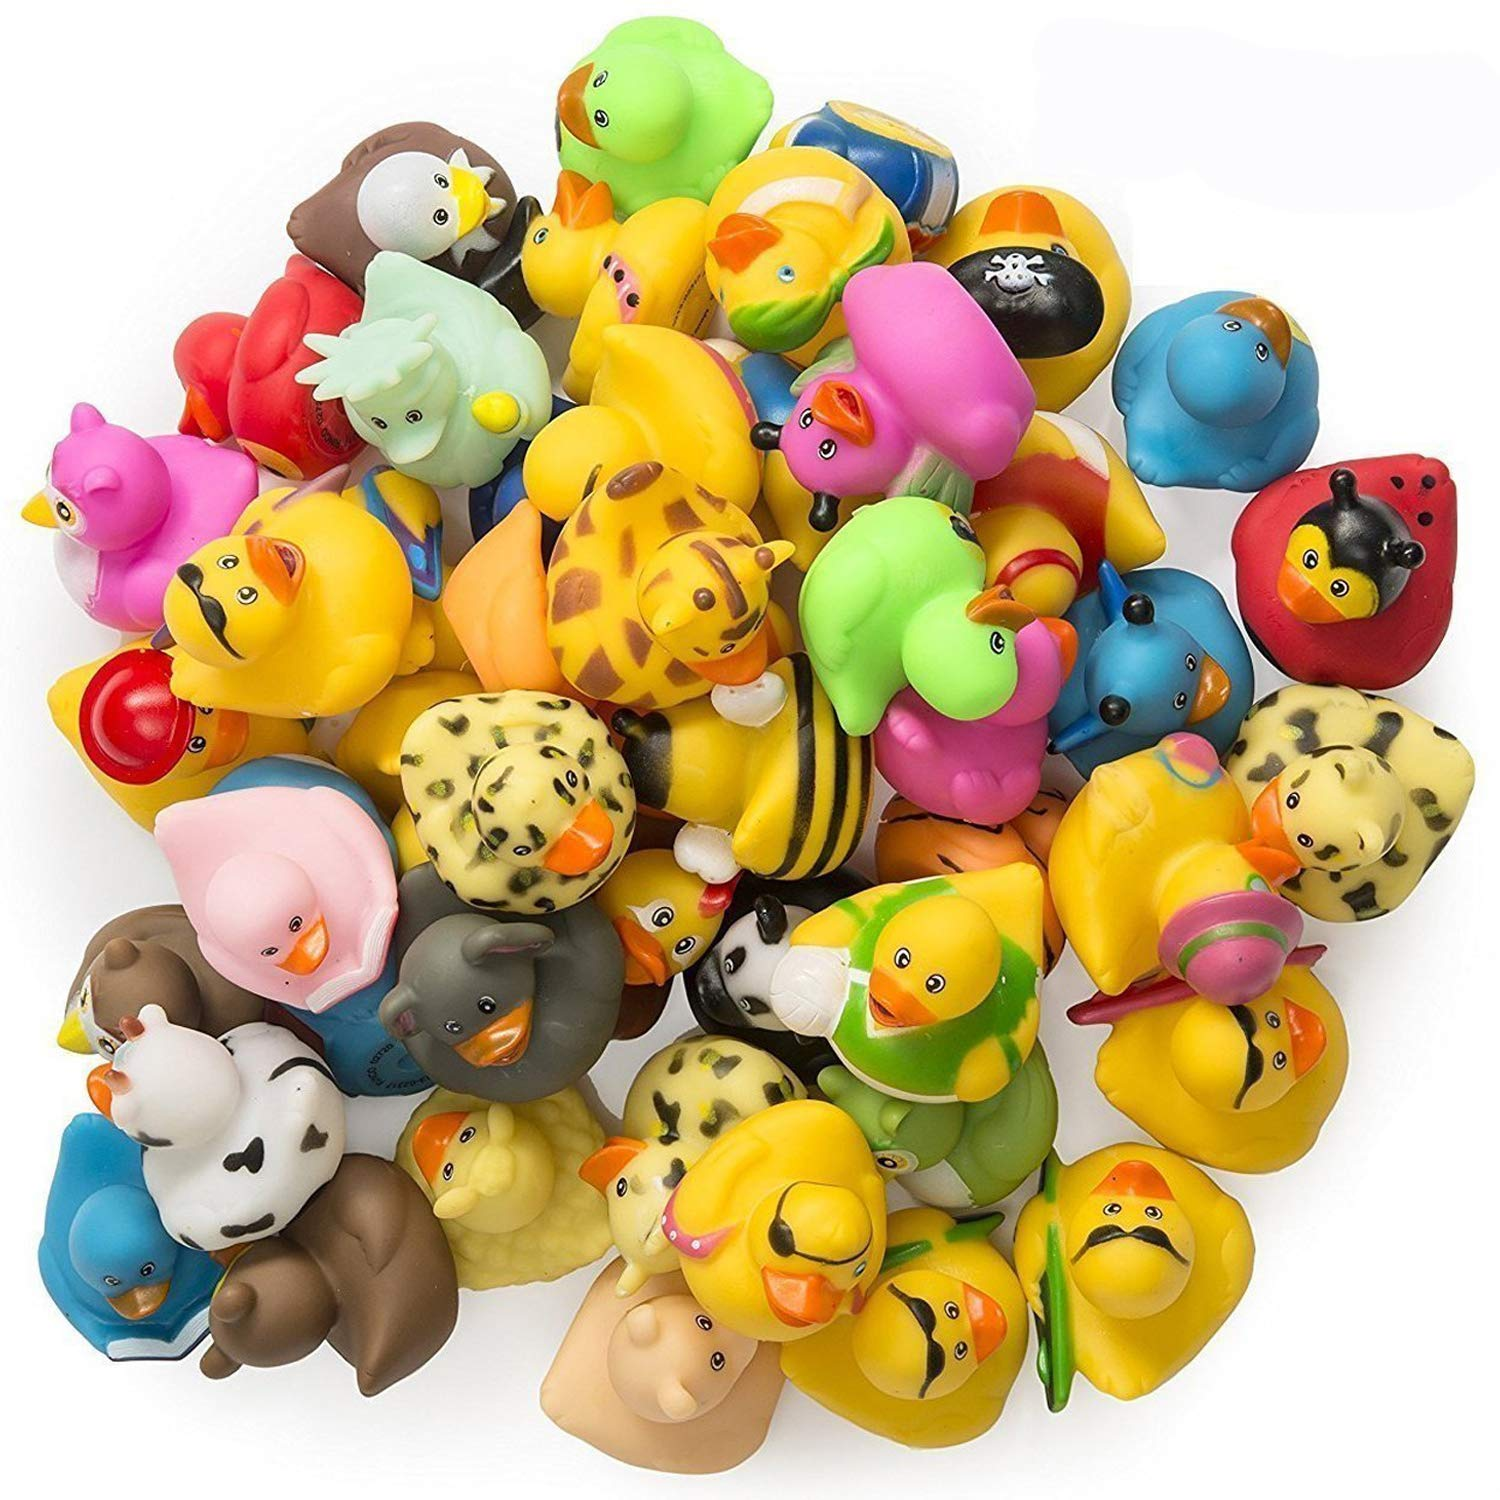 OIG Brands Rubber Ducks Bath Tub Toys 50 Pack Bulk Duckies for Babies and Kids Duck Set